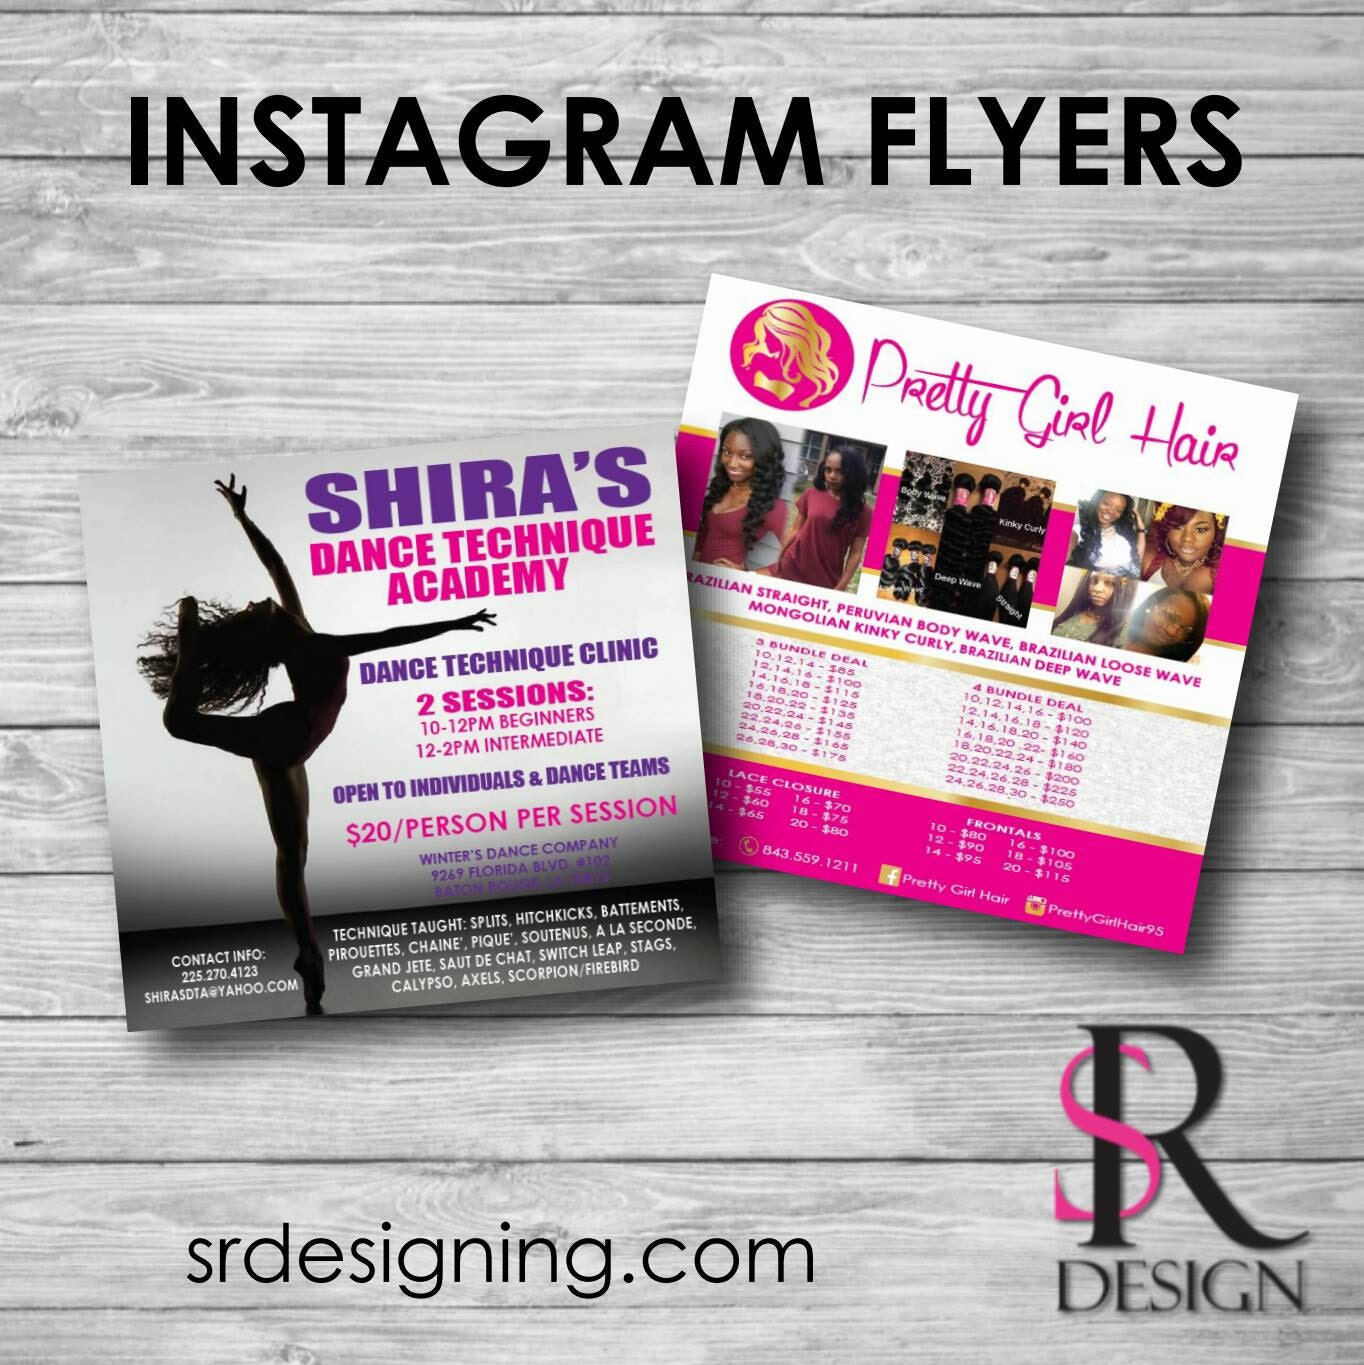 flyer design postcard flyers printable flyers social media flyers